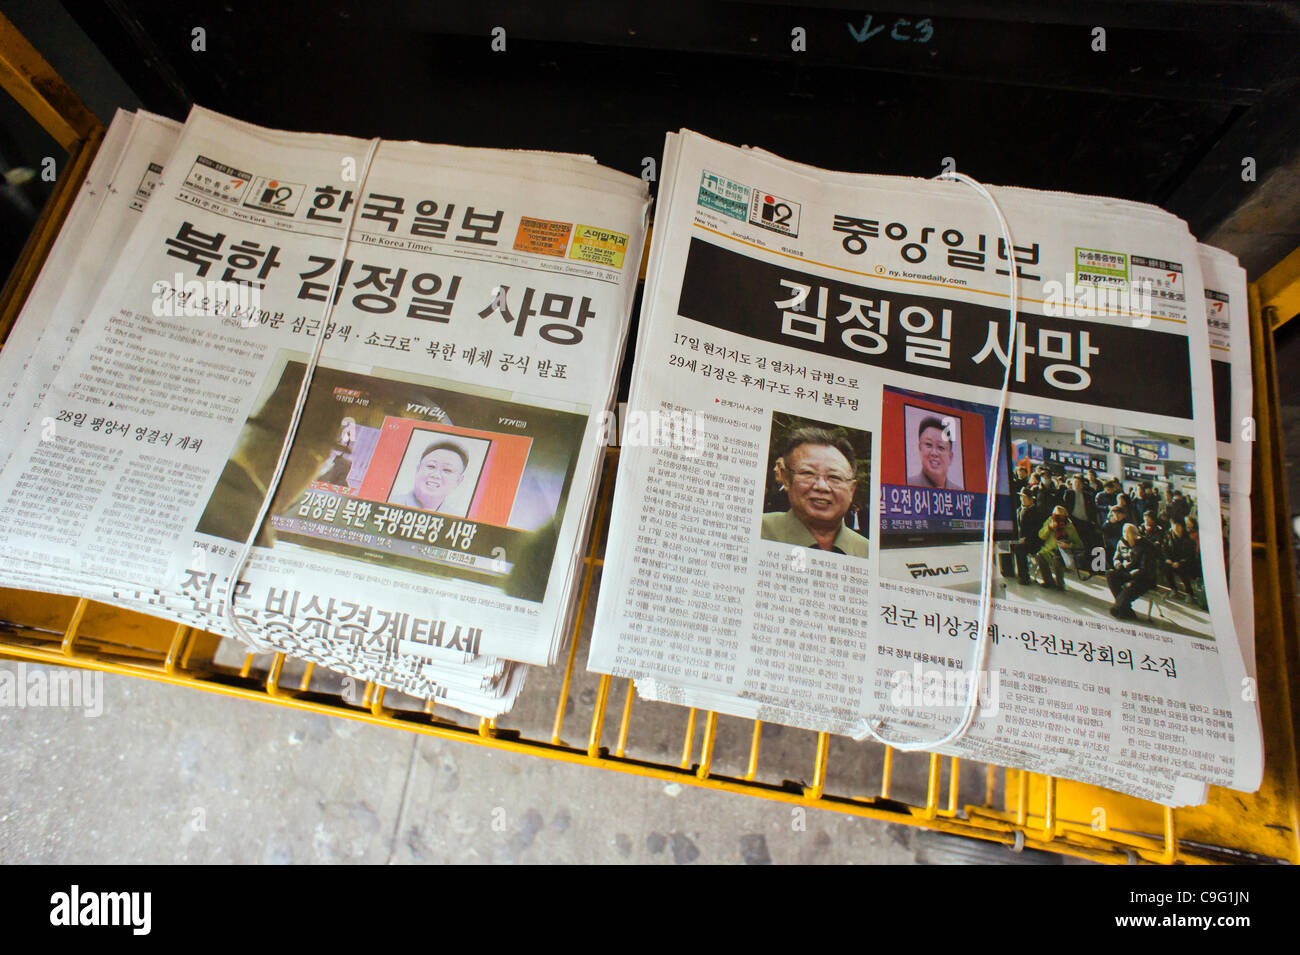 The New York newspapers, Korea Times and Korea Daily are seen in Koreatown in New York on Monday, December 19, 2011 - Stock Image